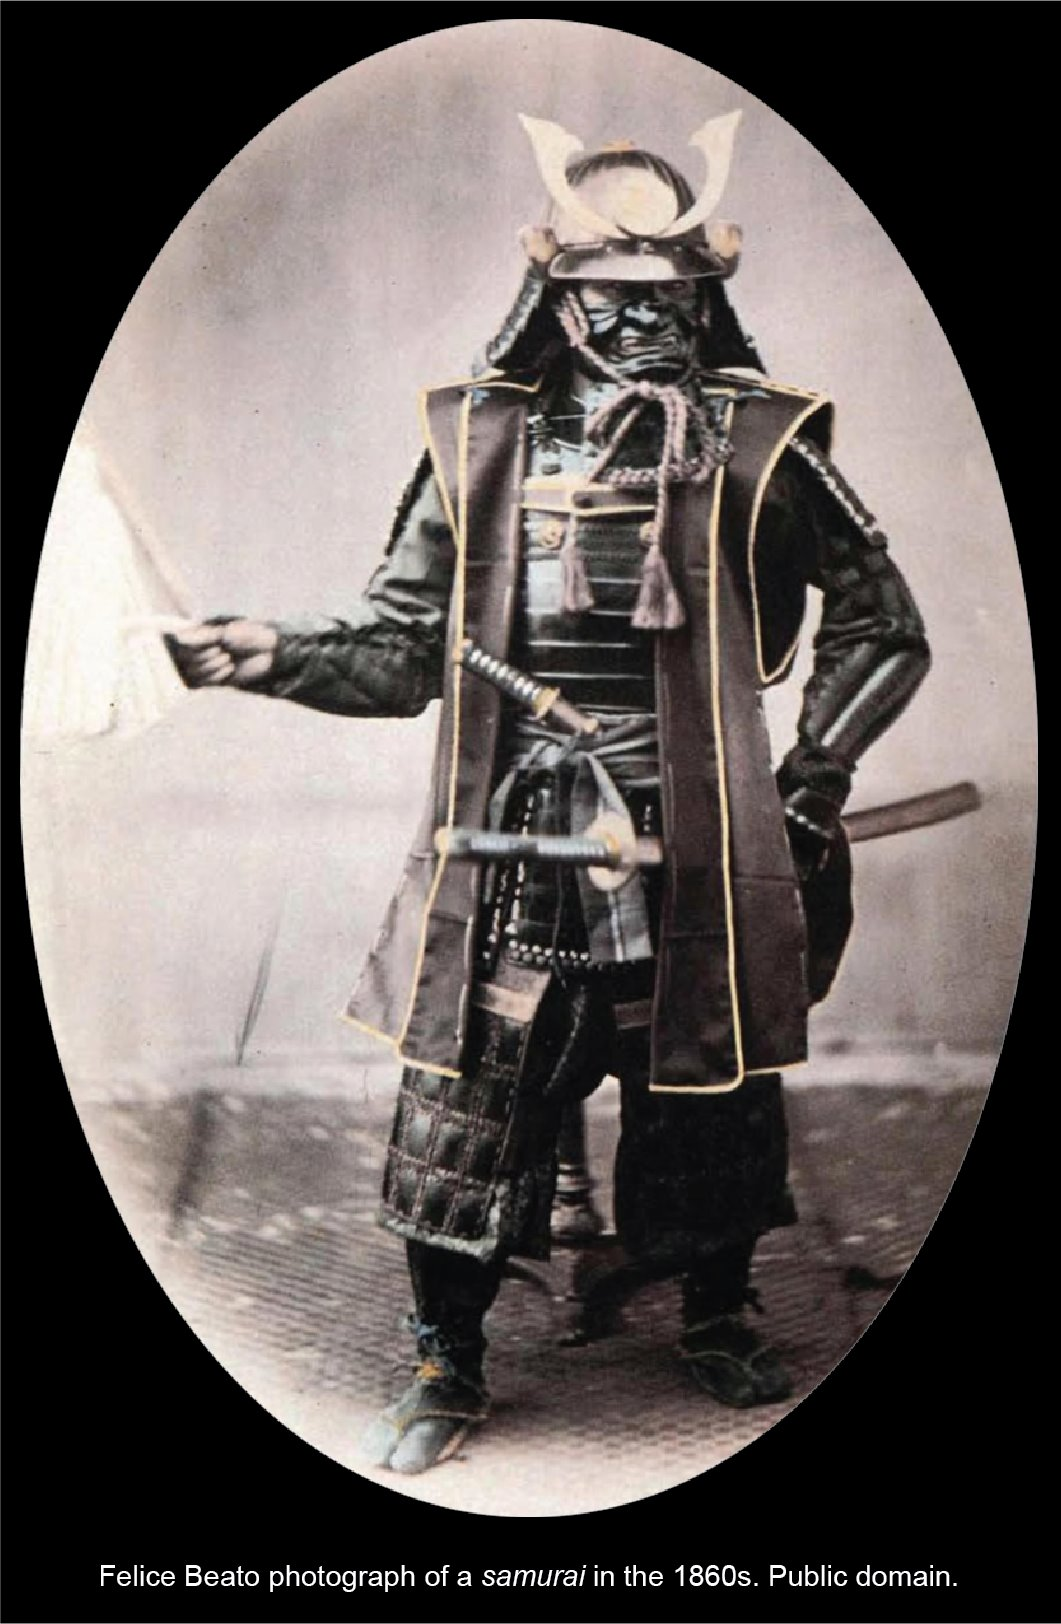 An armored samurai pictured with his daisho, 1860s.